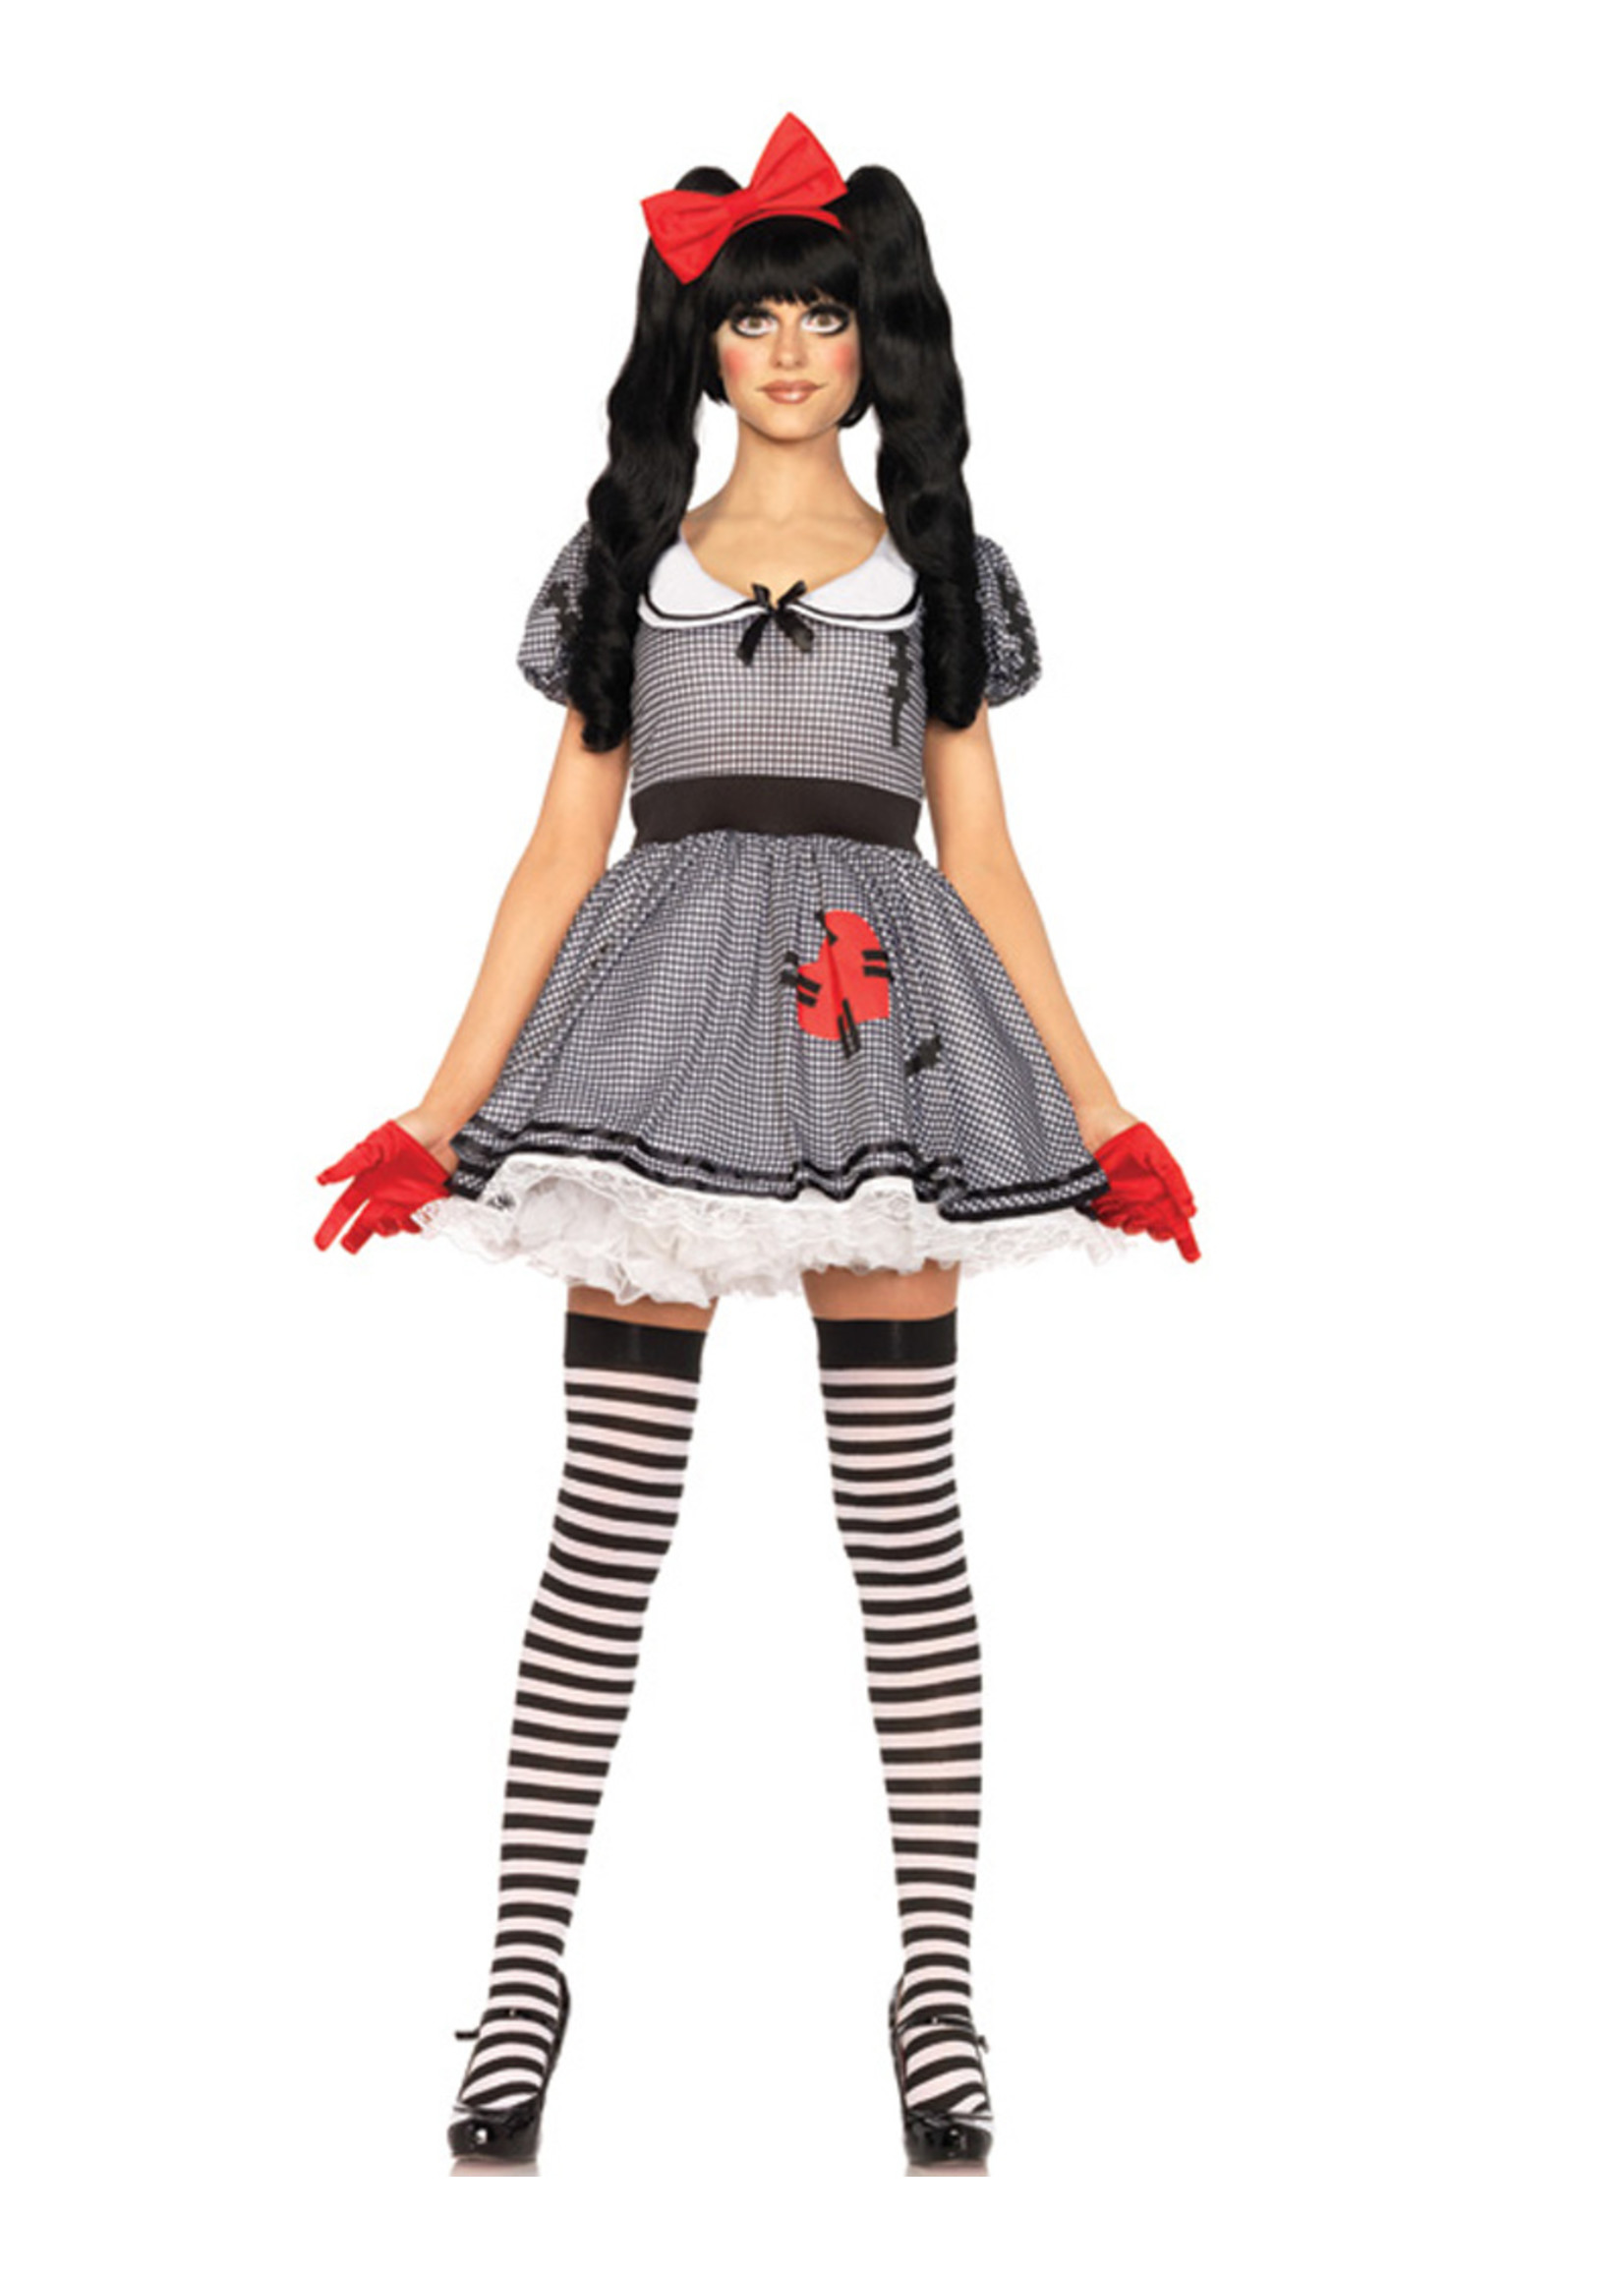 Wind-Me-Up Dolly Costume - Women's